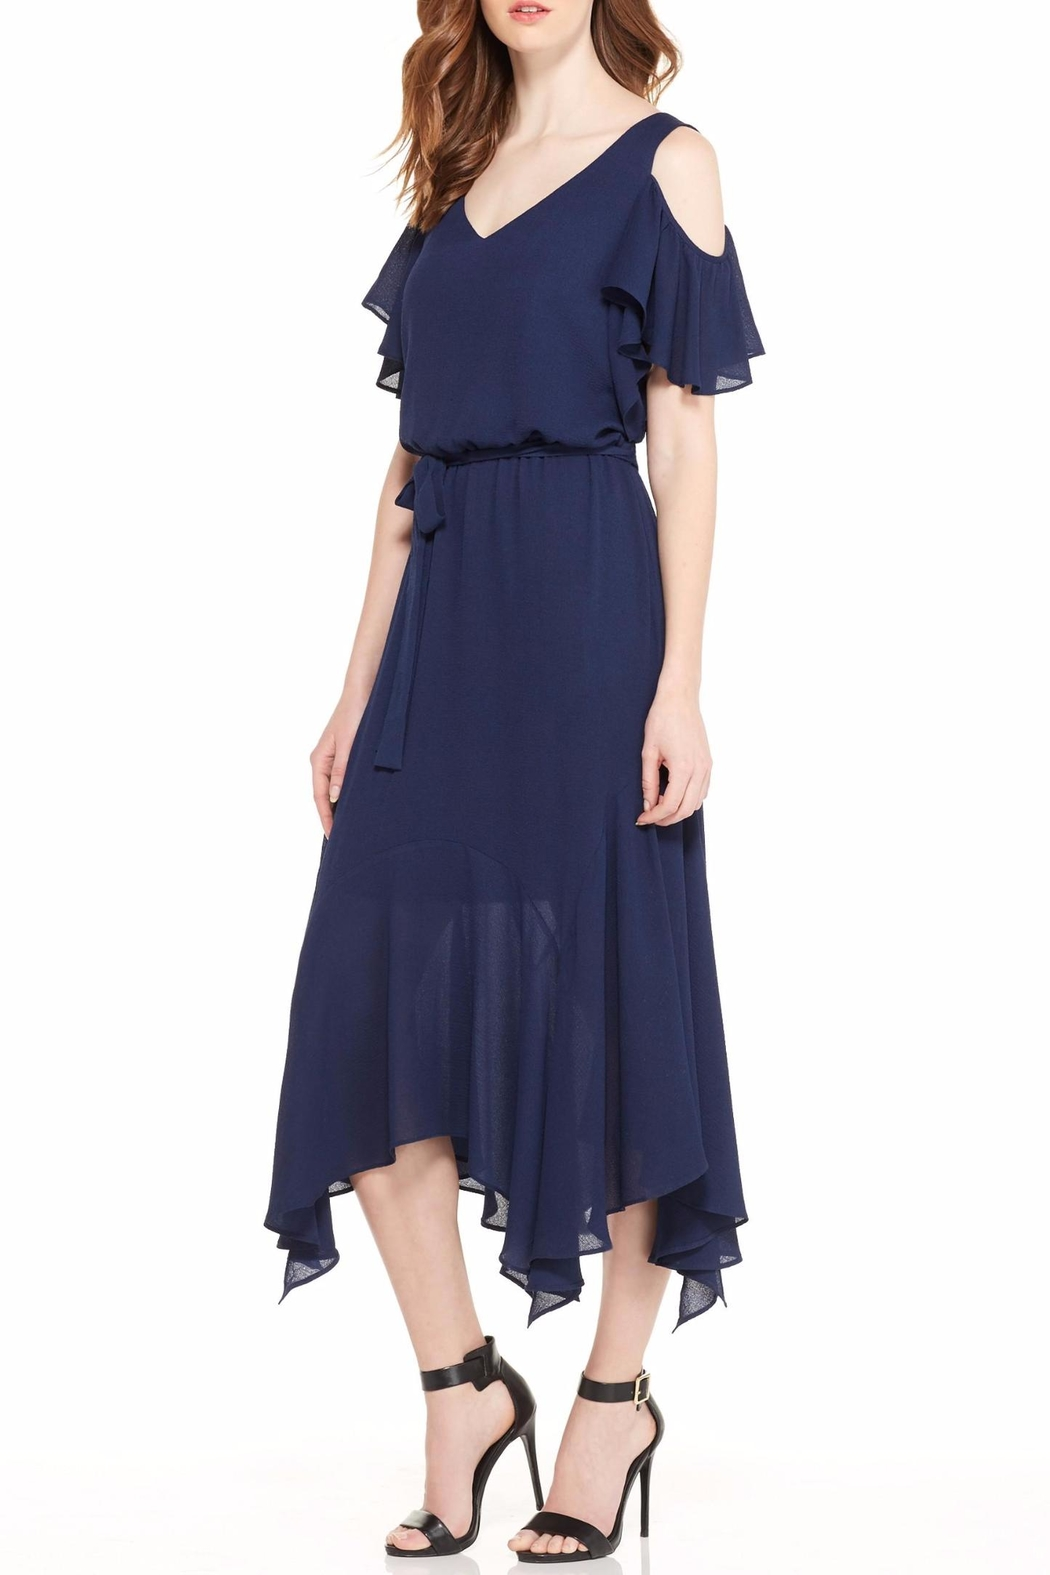 Maggy London Navy Cold Shoulder Dress - Side Cropped Image